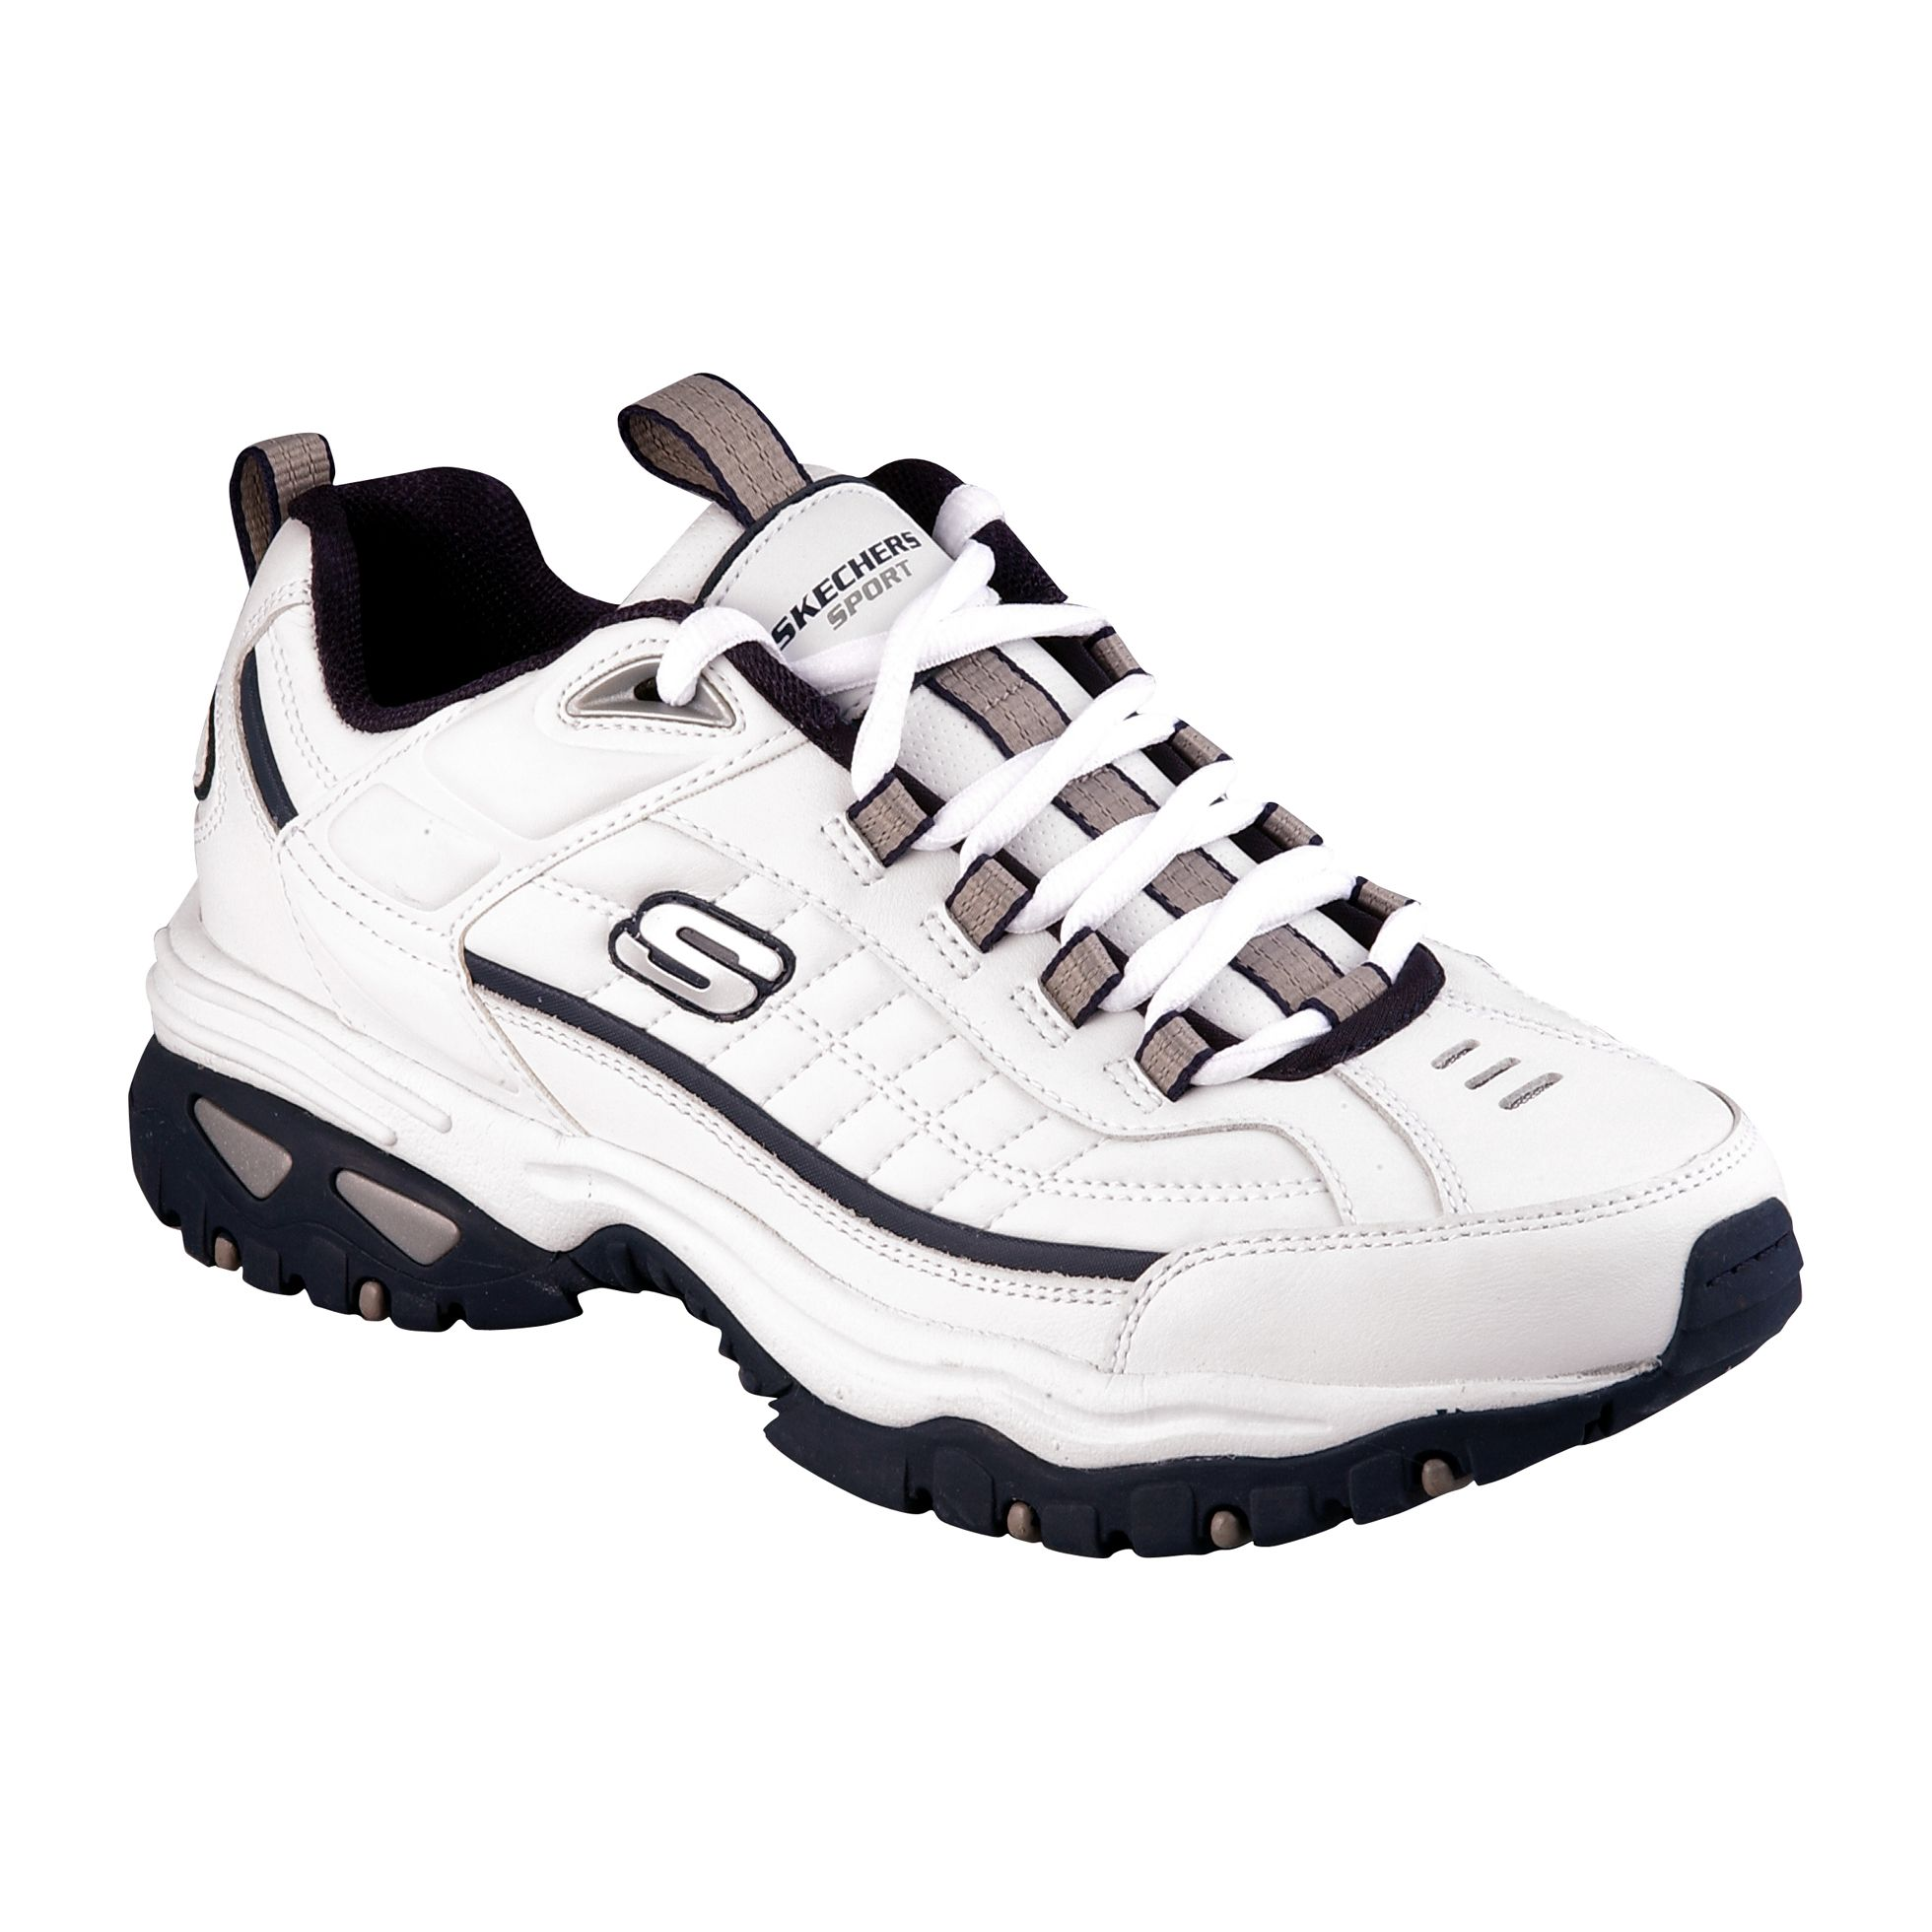 Skechers  Men's Afterburn Athletic Shoe - Navy/White